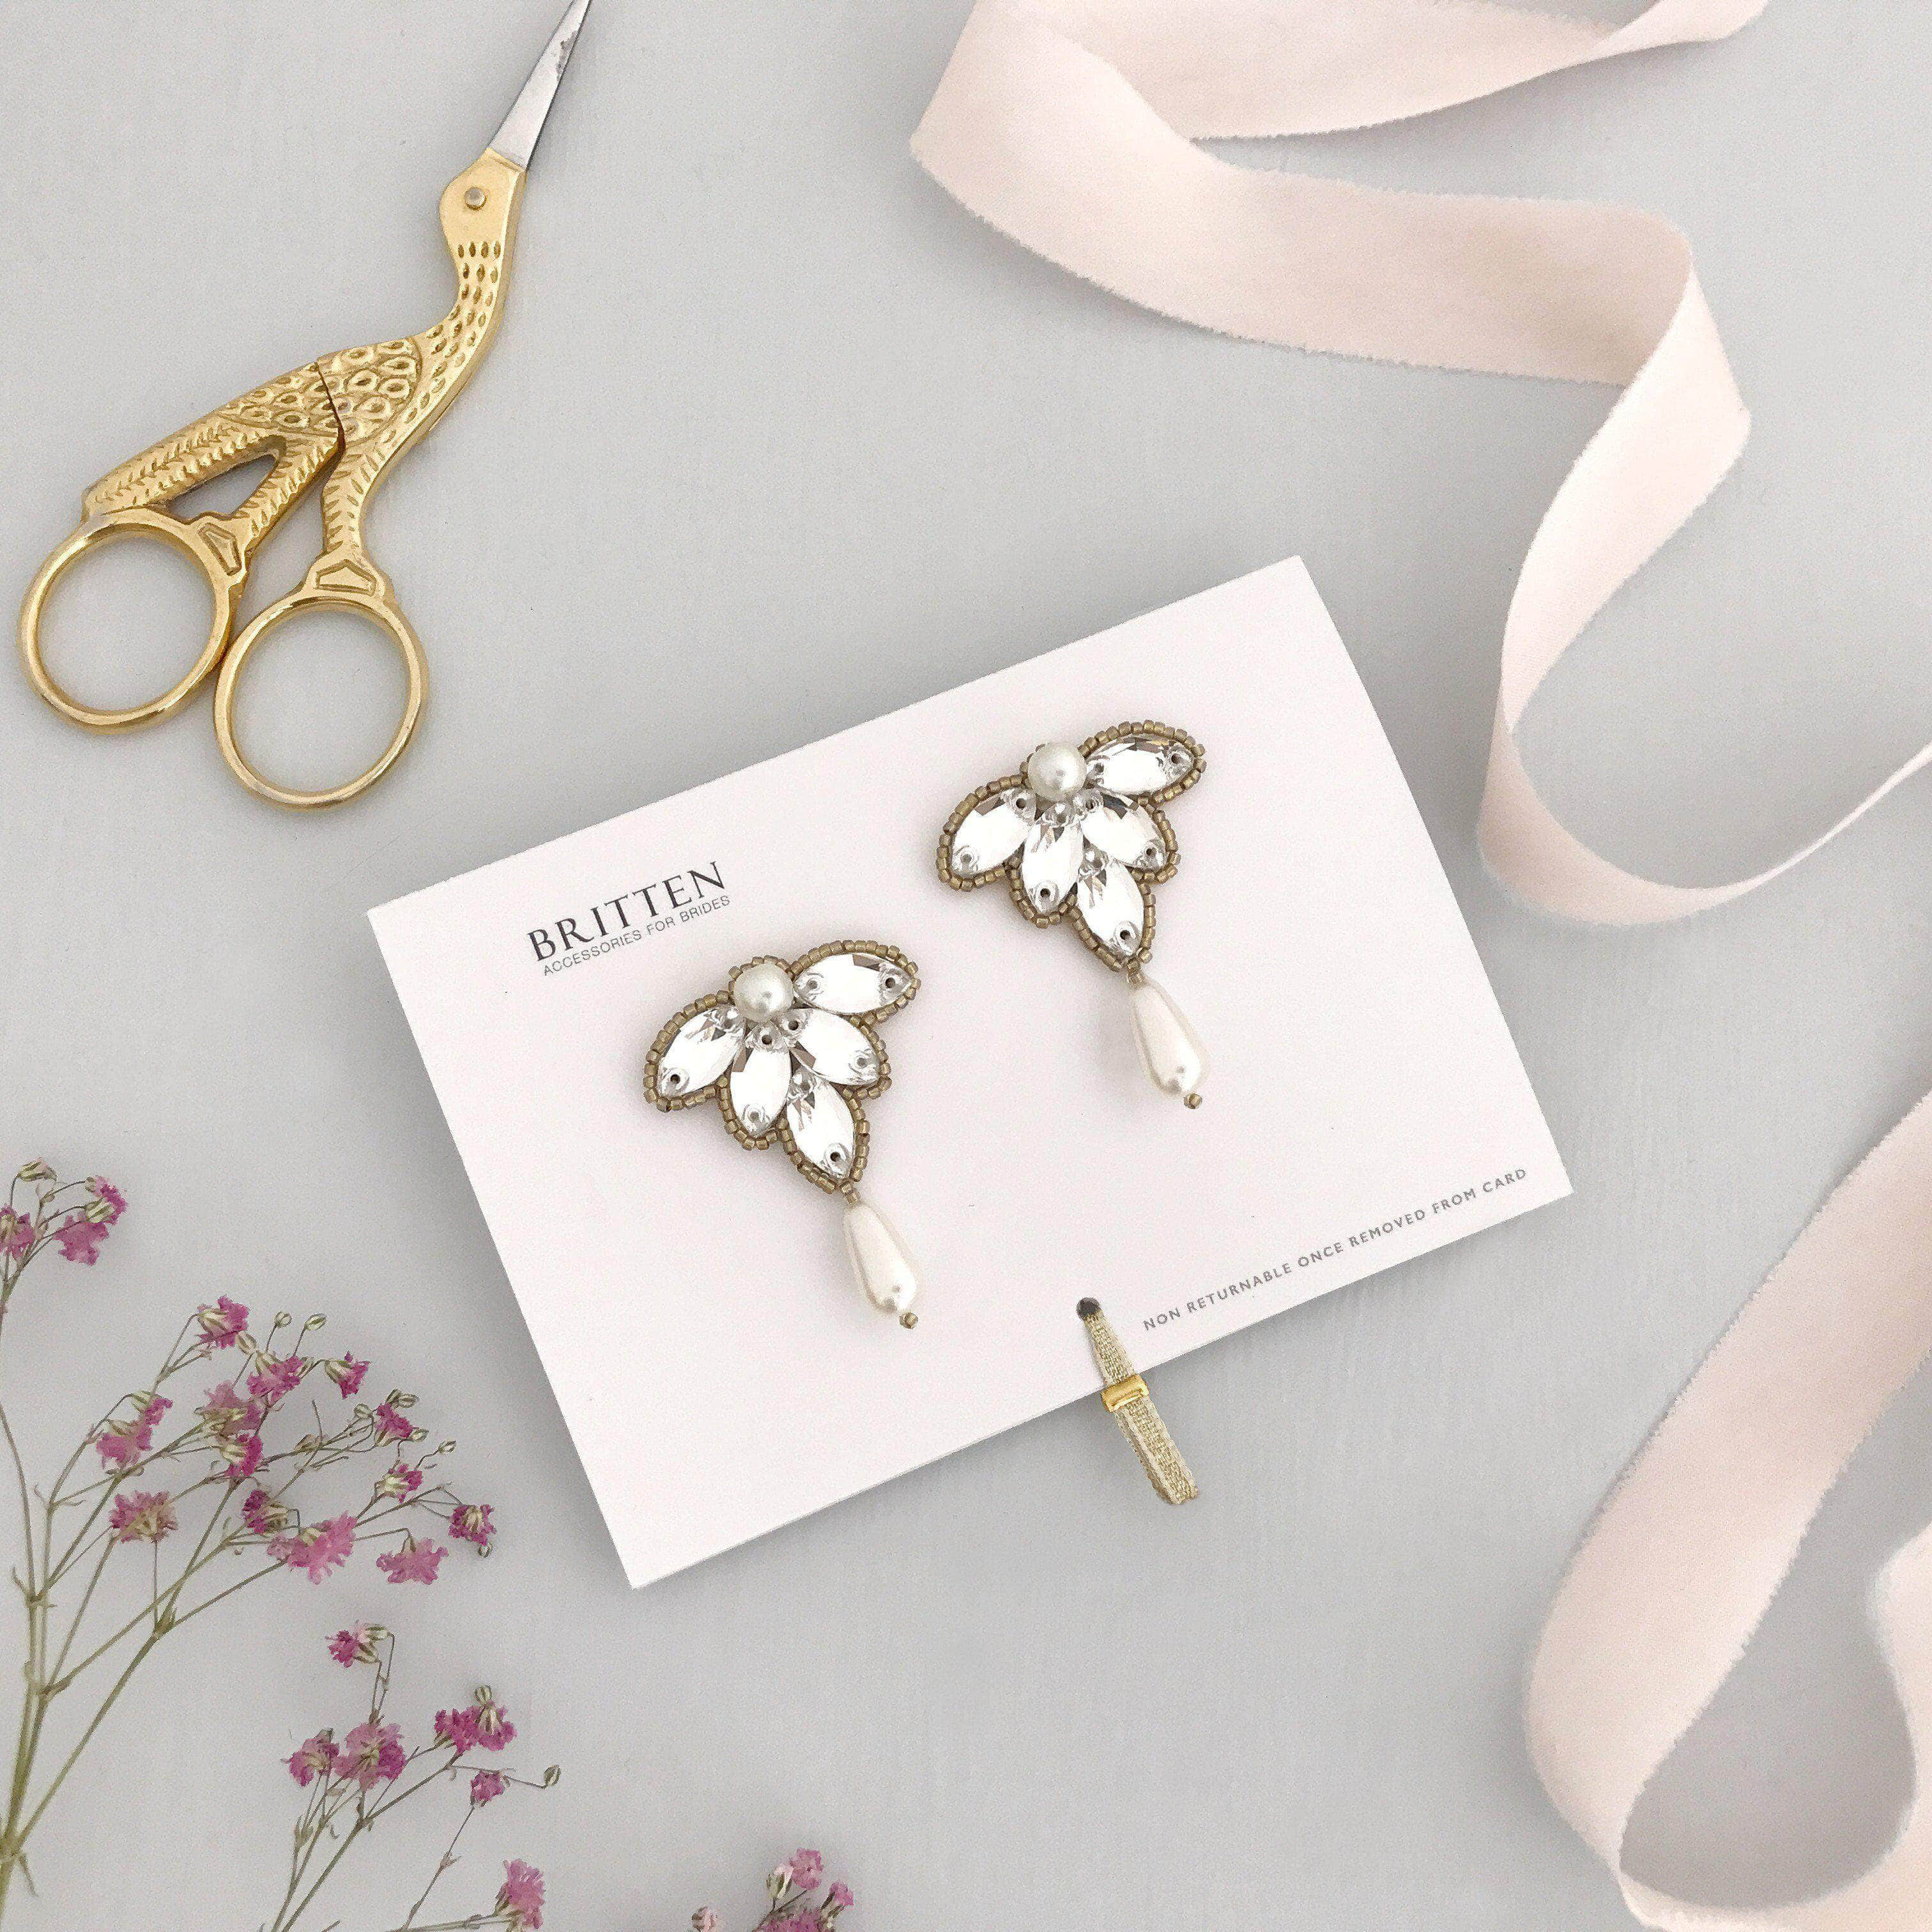 c387f0035 Crystal wedding earrings gold and pearl - 'Florence' | Britten Weddings